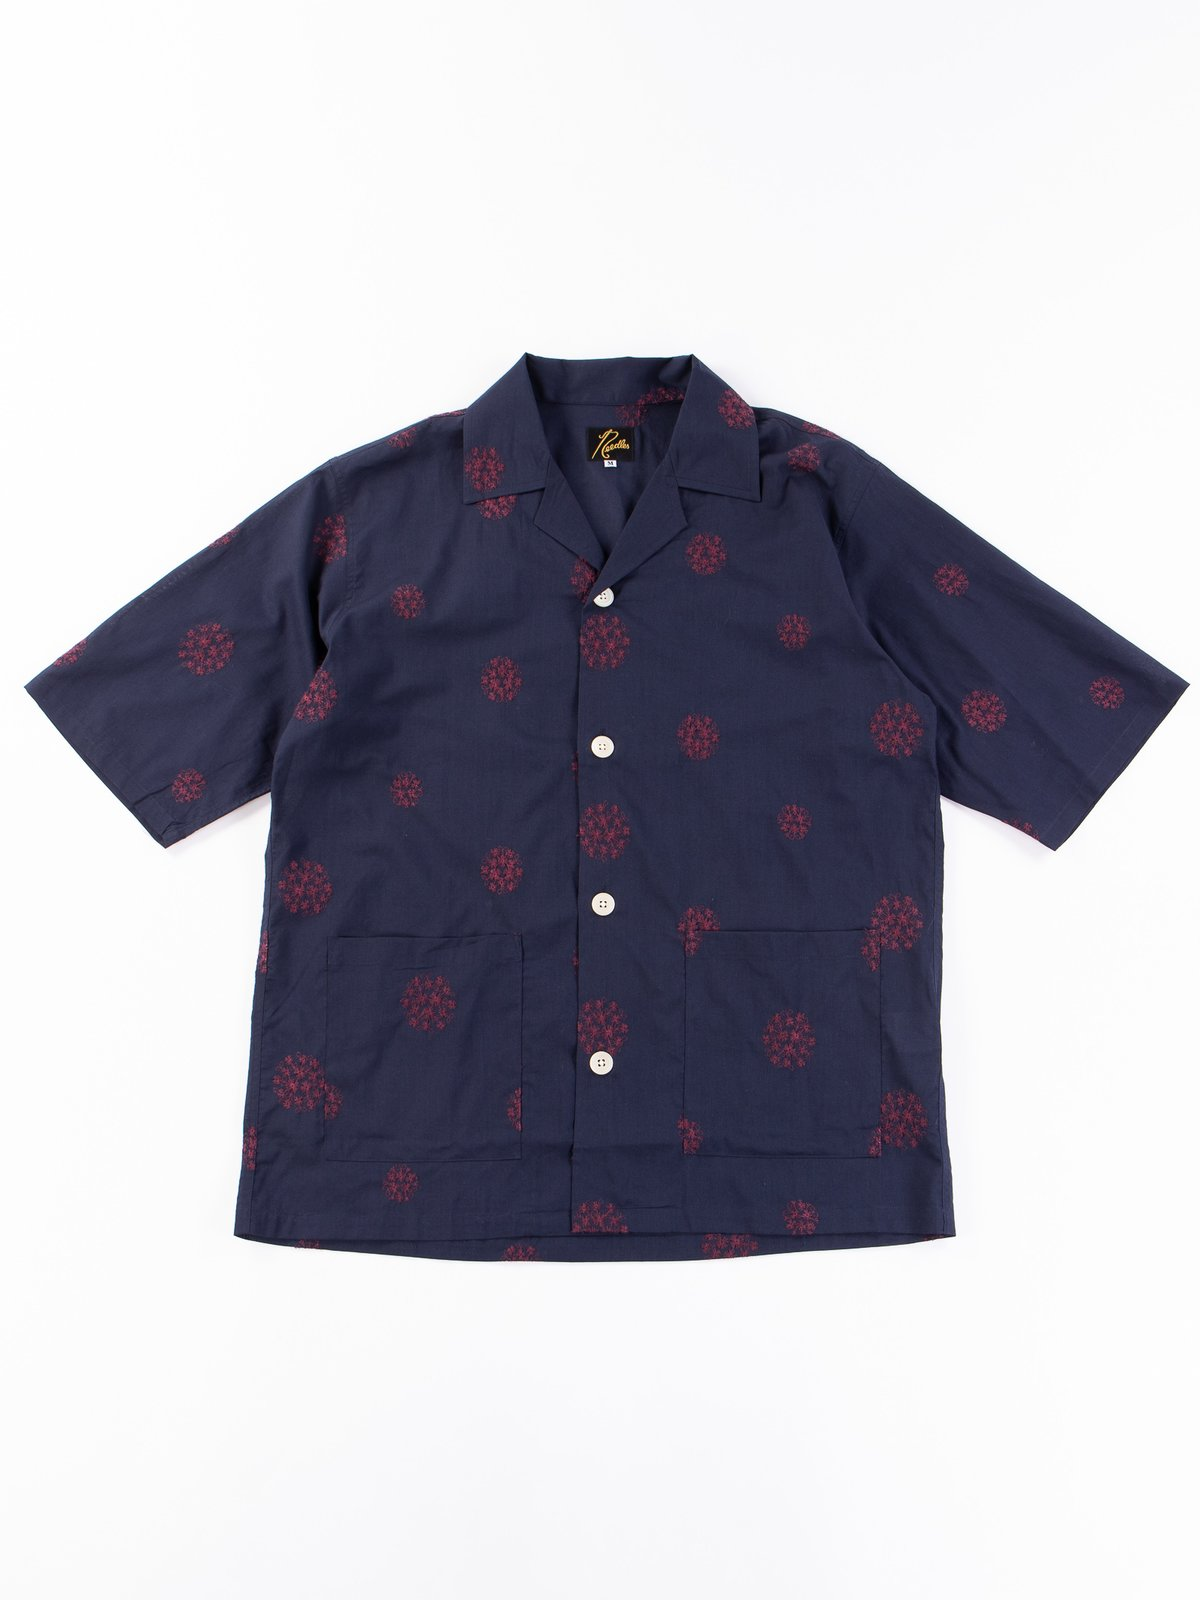 Navy Floral Dot Embroidered Cabana Shirt - Image 1